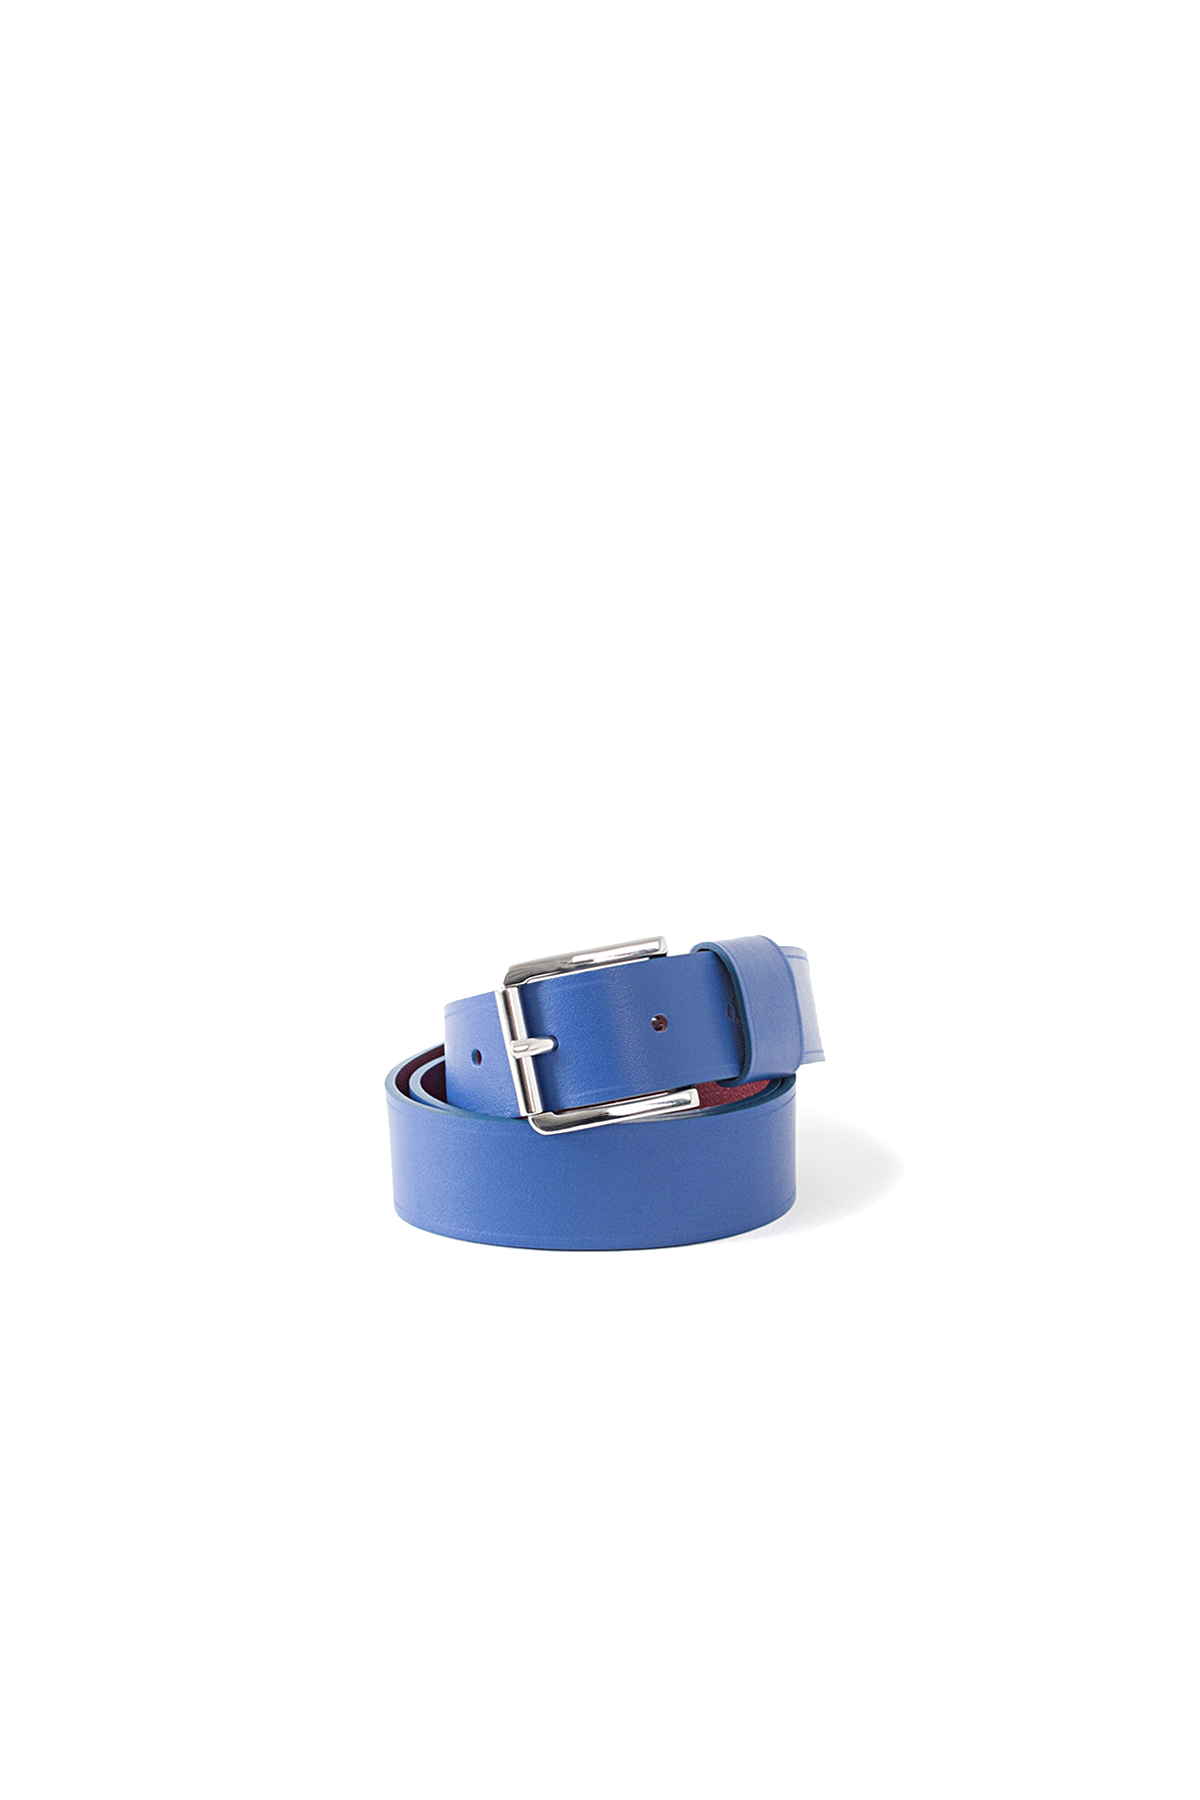 Sofie D'Hoore : Verdict 30 Bi Color Leather Belt (Electricblue/Burgundy)